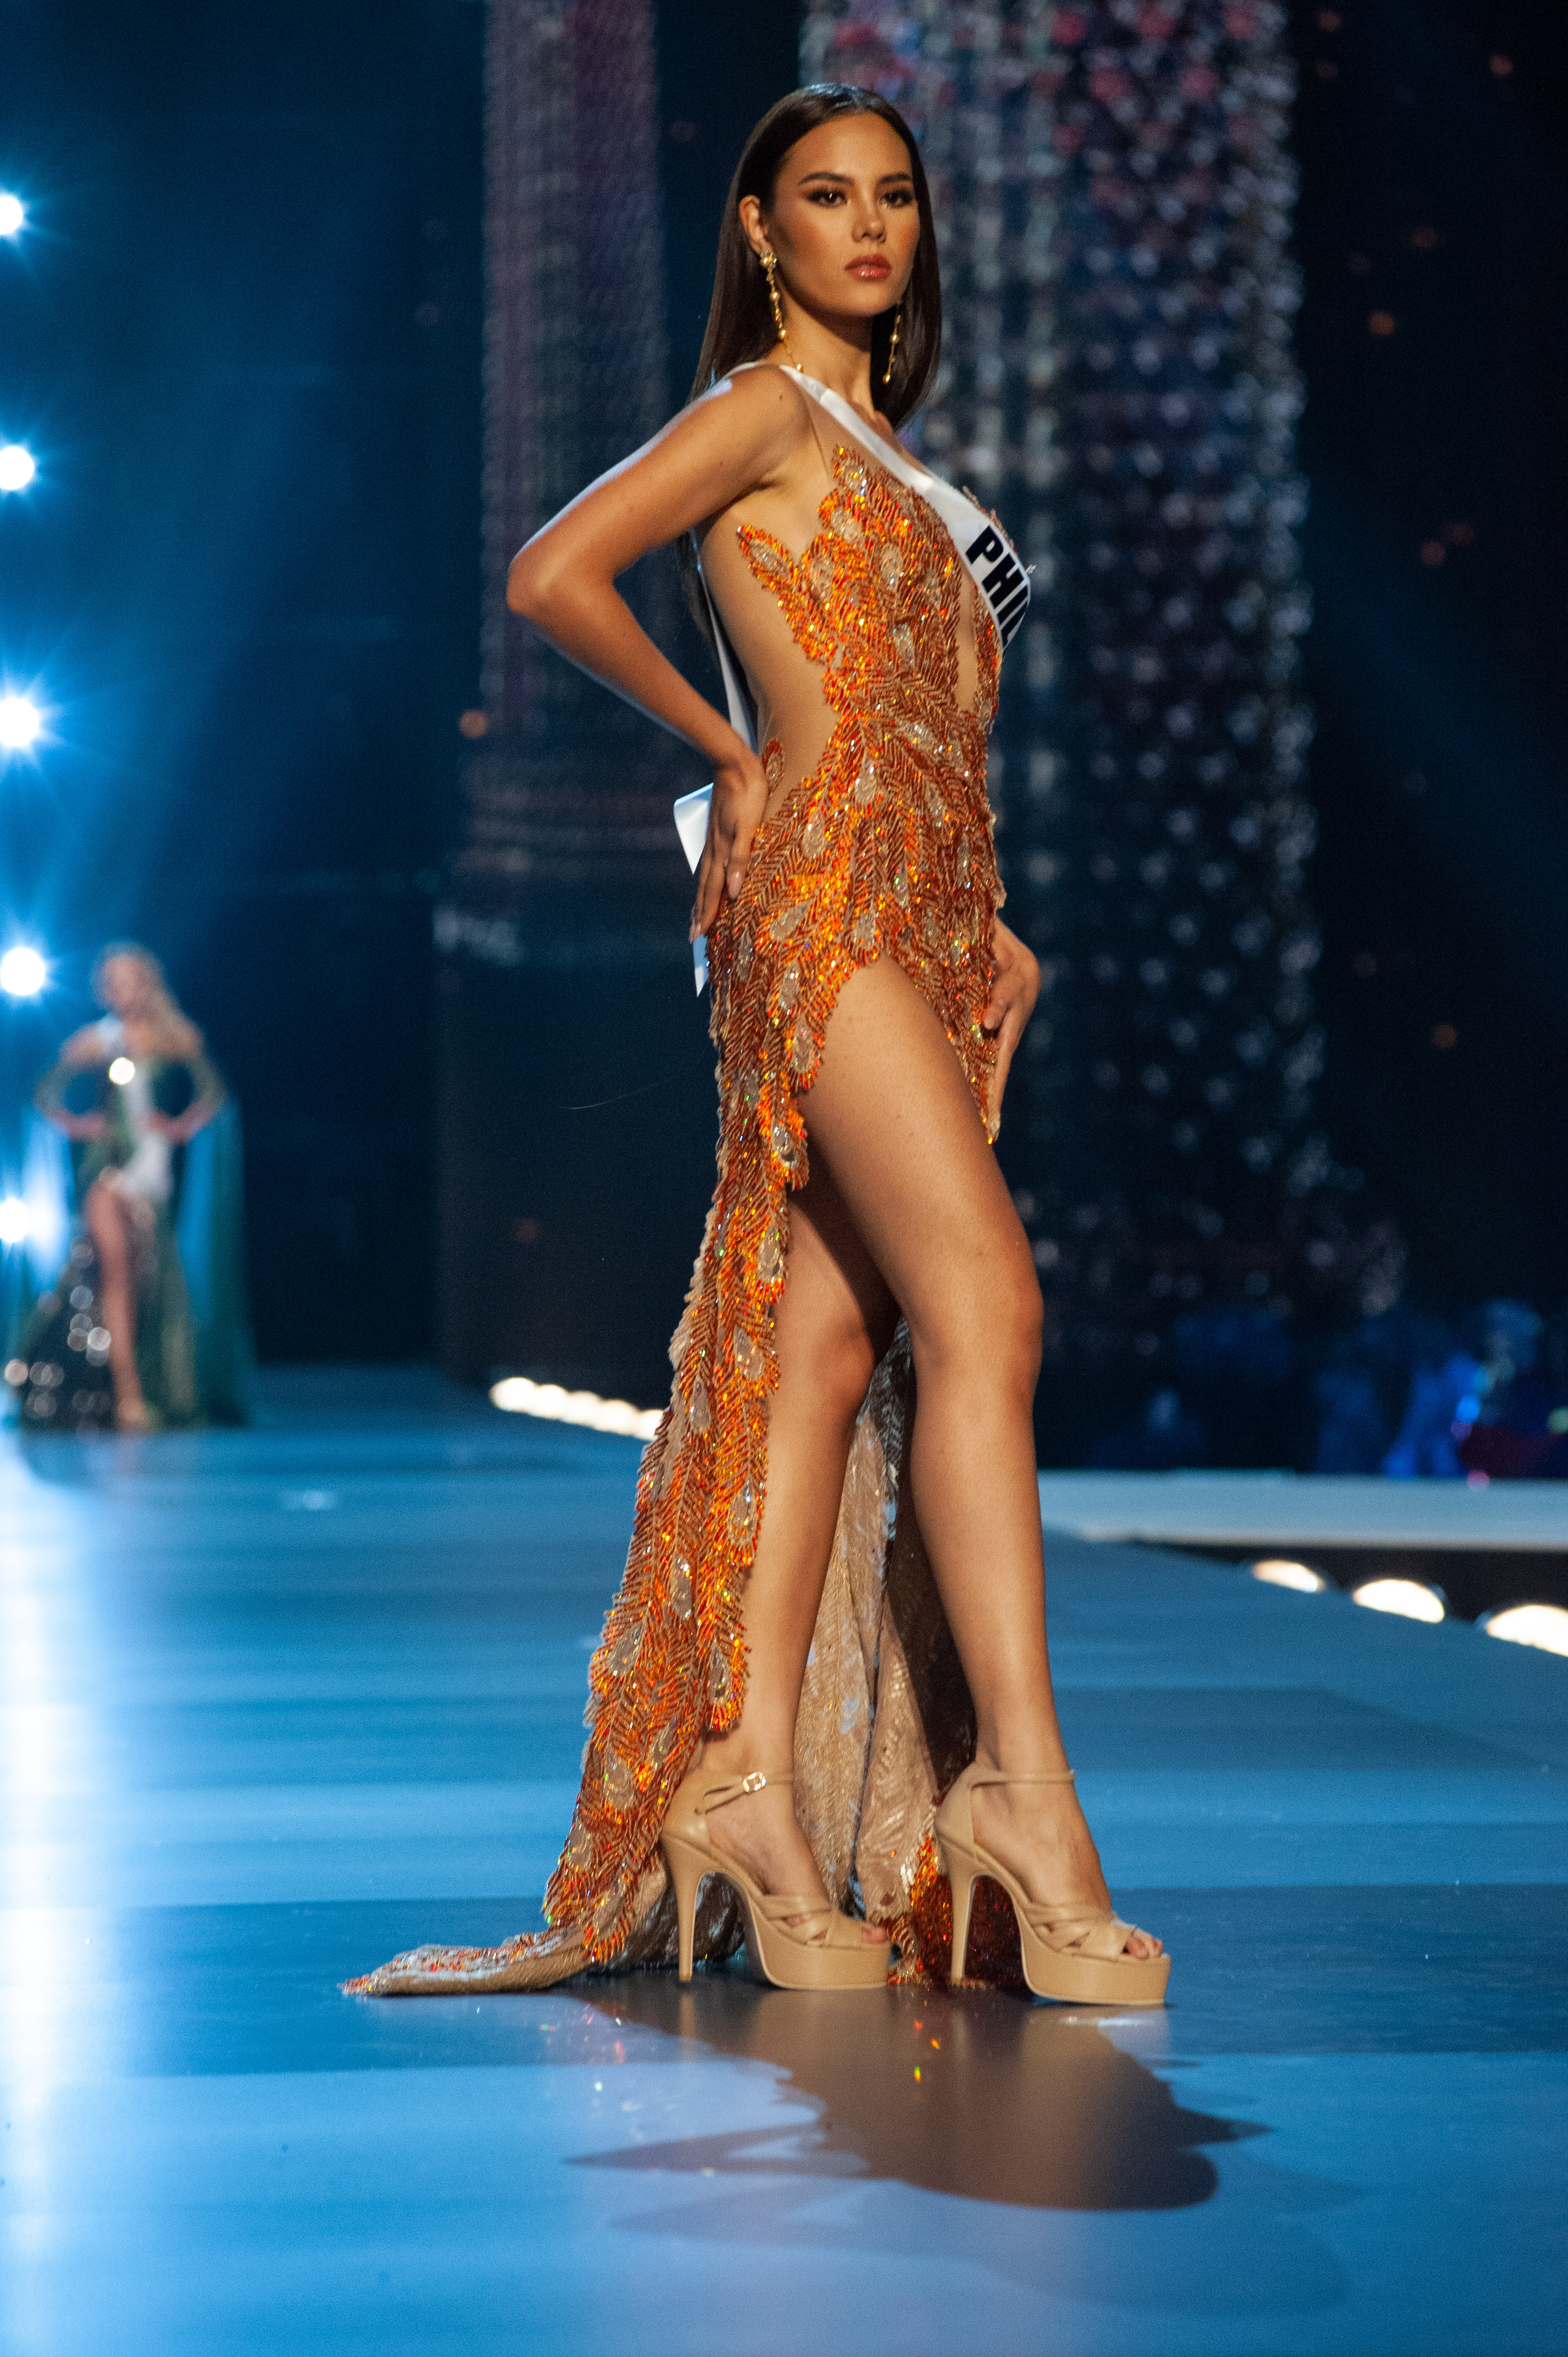 Catriona Gray, Miss Philippines 2018 competes on stage in her evening gown during the MISS UNIVERSE Preliminary Competition at IMPACT Arena in Bangkok, Thailand on Thursday, December 13th. Photo from  Patrick Prather/The Miss Universe Organization